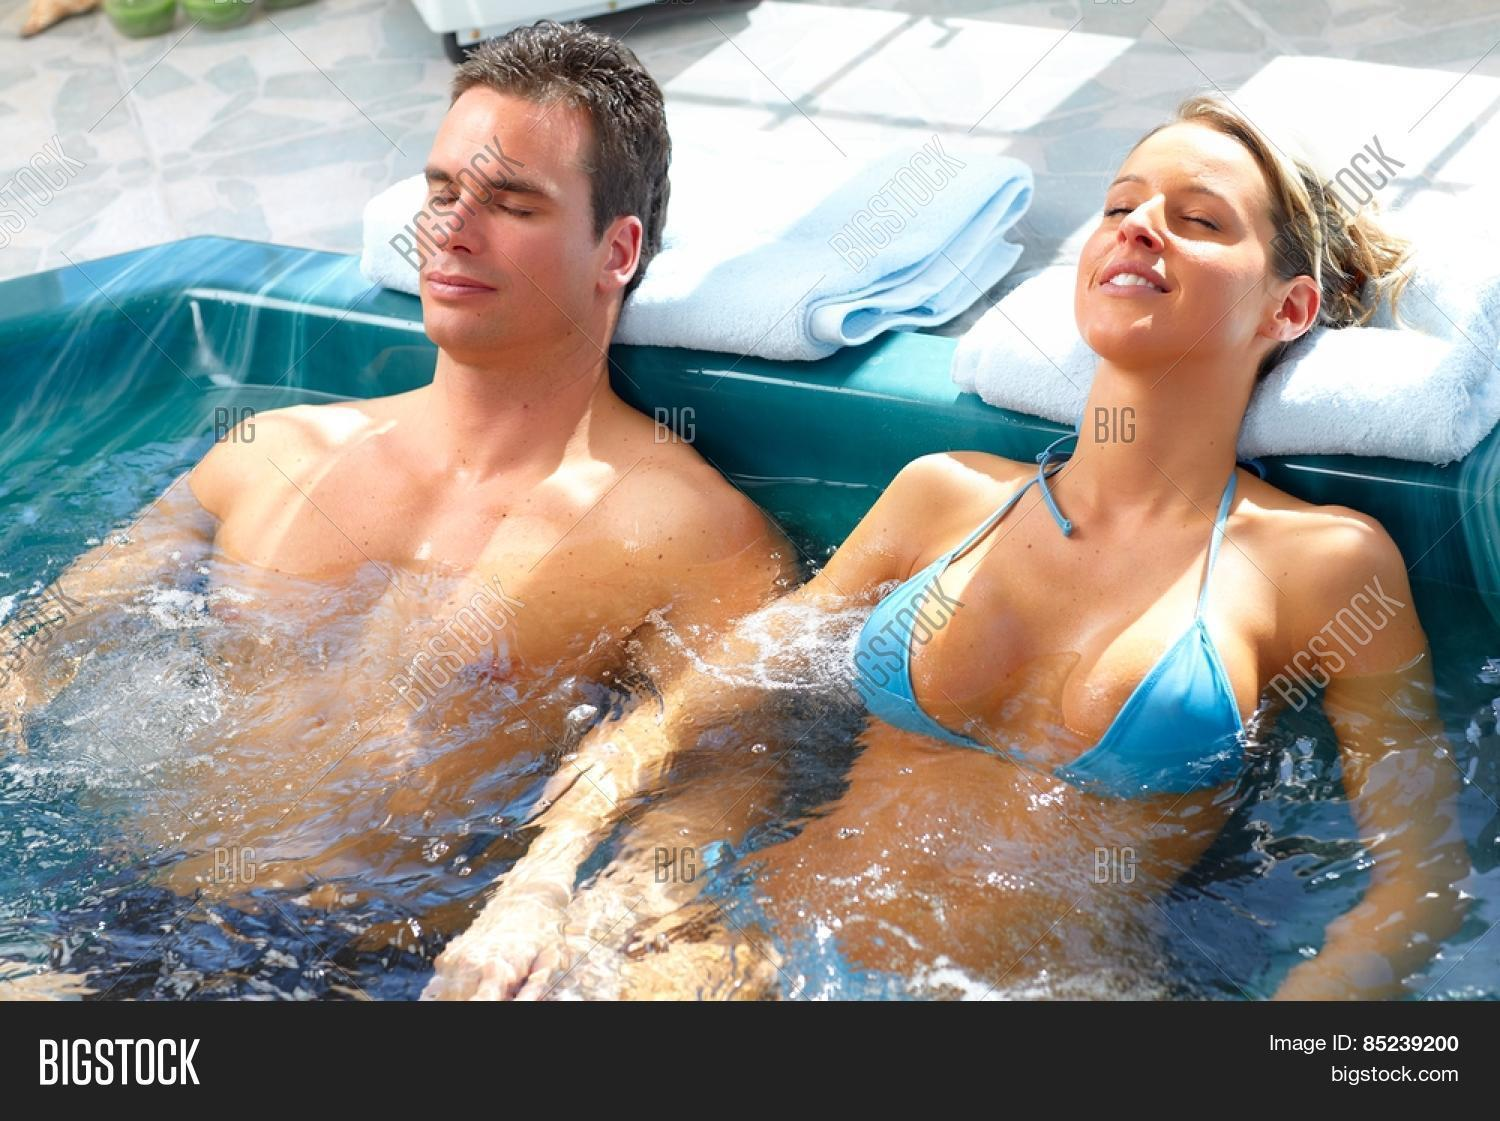 young couple relaxing hot tub image photo bigstock. Black Bedroom Furniture Sets. Home Design Ideas